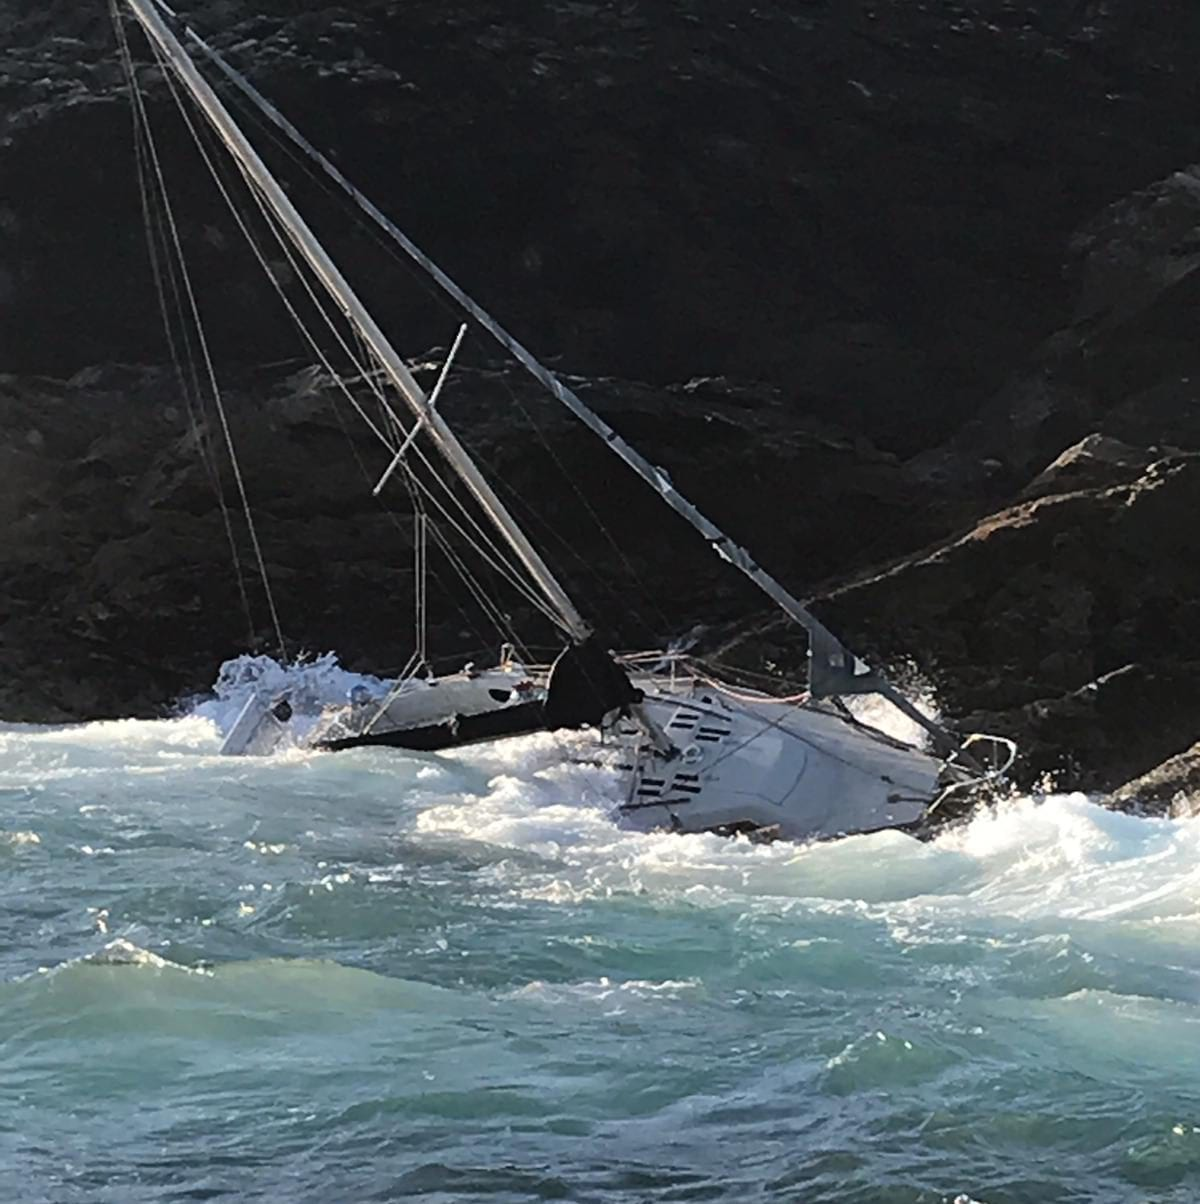 shipwrecked yacht